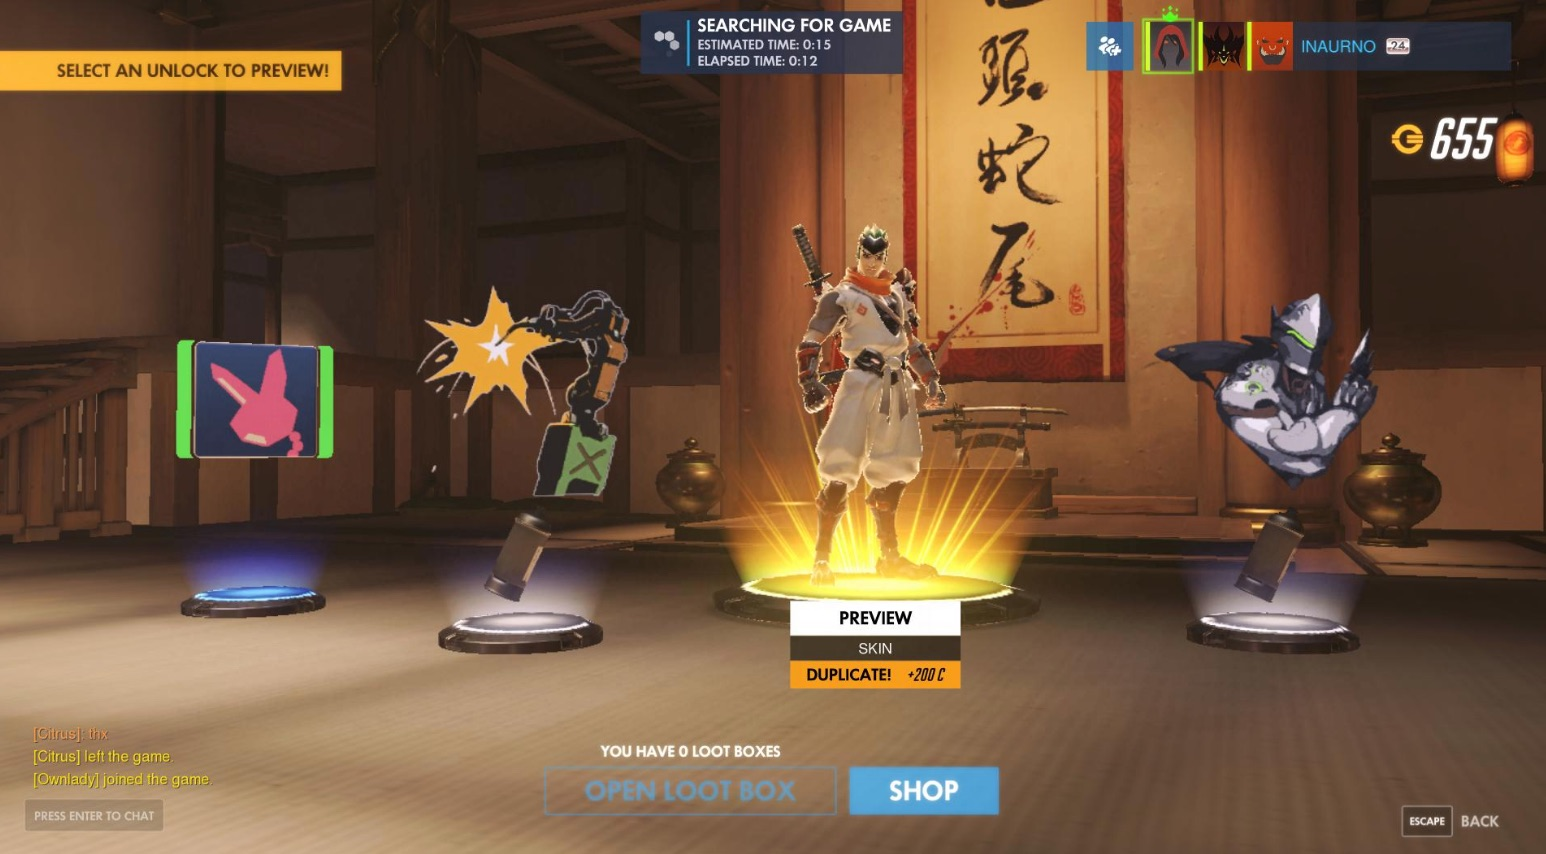 Blizzard's Overwatch has been extremely successful in monetizing through purely cosmetic items.